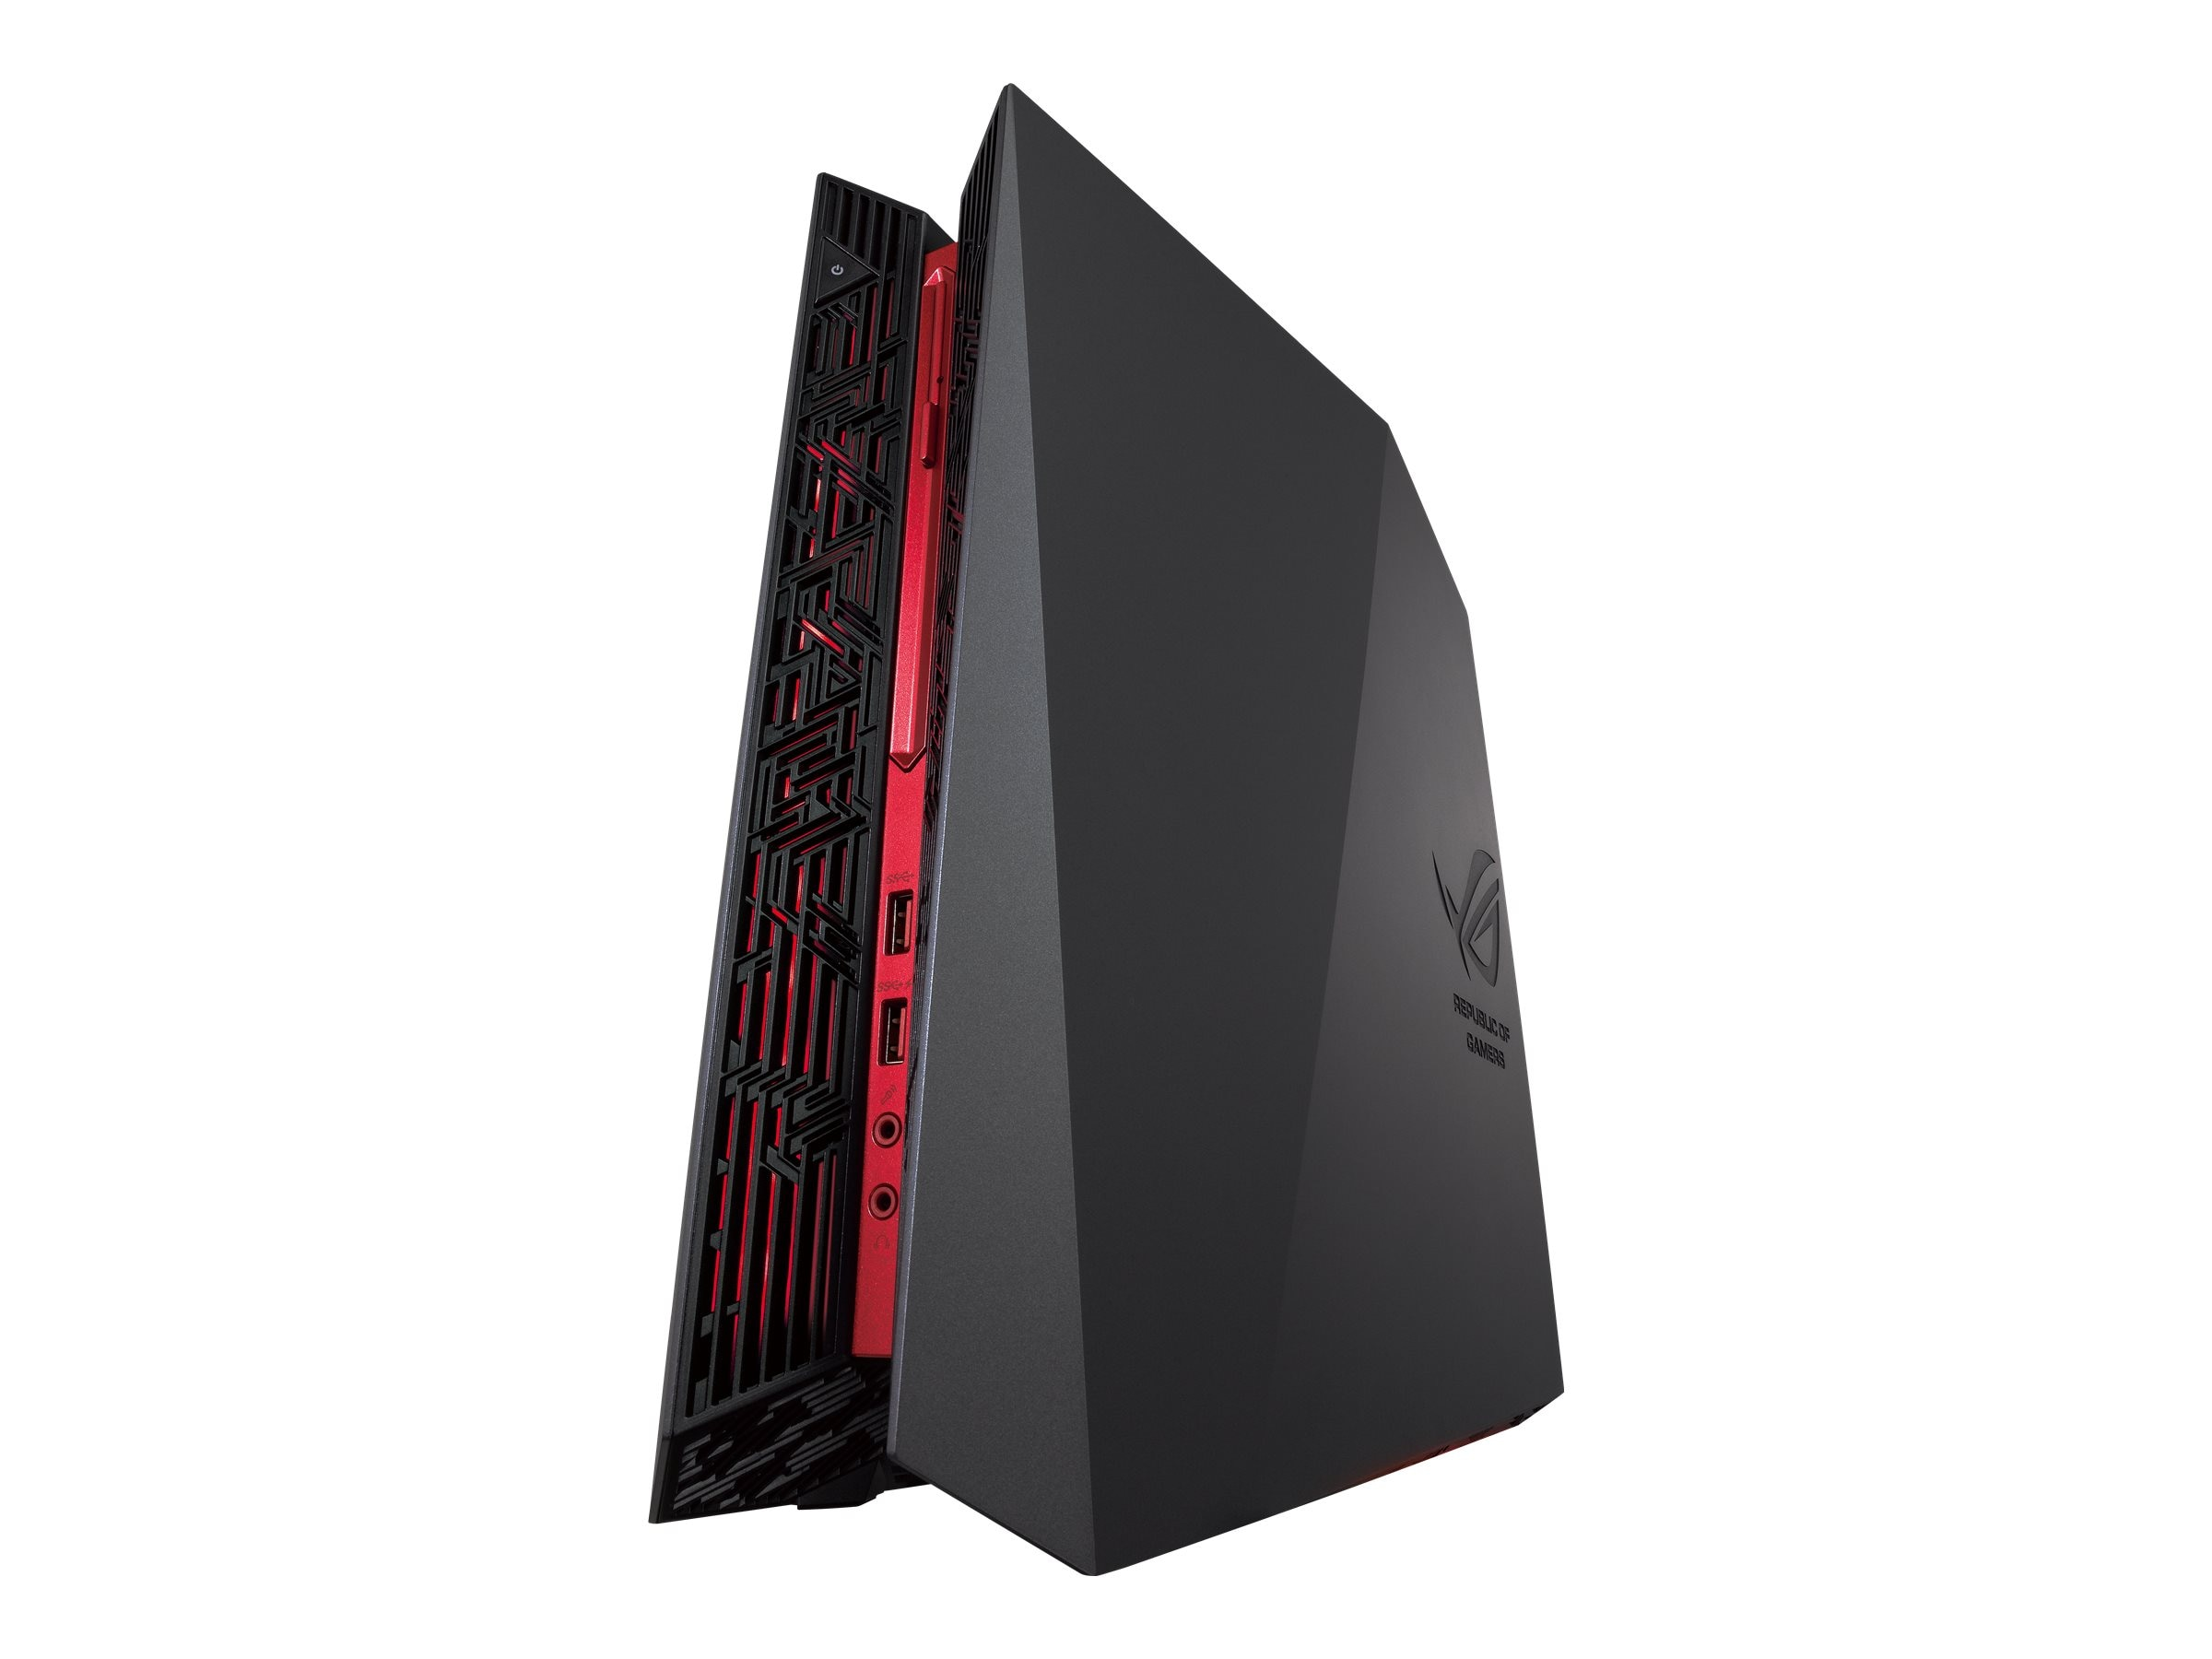 Asus G20AJ-US009S Tower Core i7-4790 8GB 1TB SSHD GTX760 DVD-RW GbE ac BT W8.1, G20AJ-US009S, 17950150, Desktops